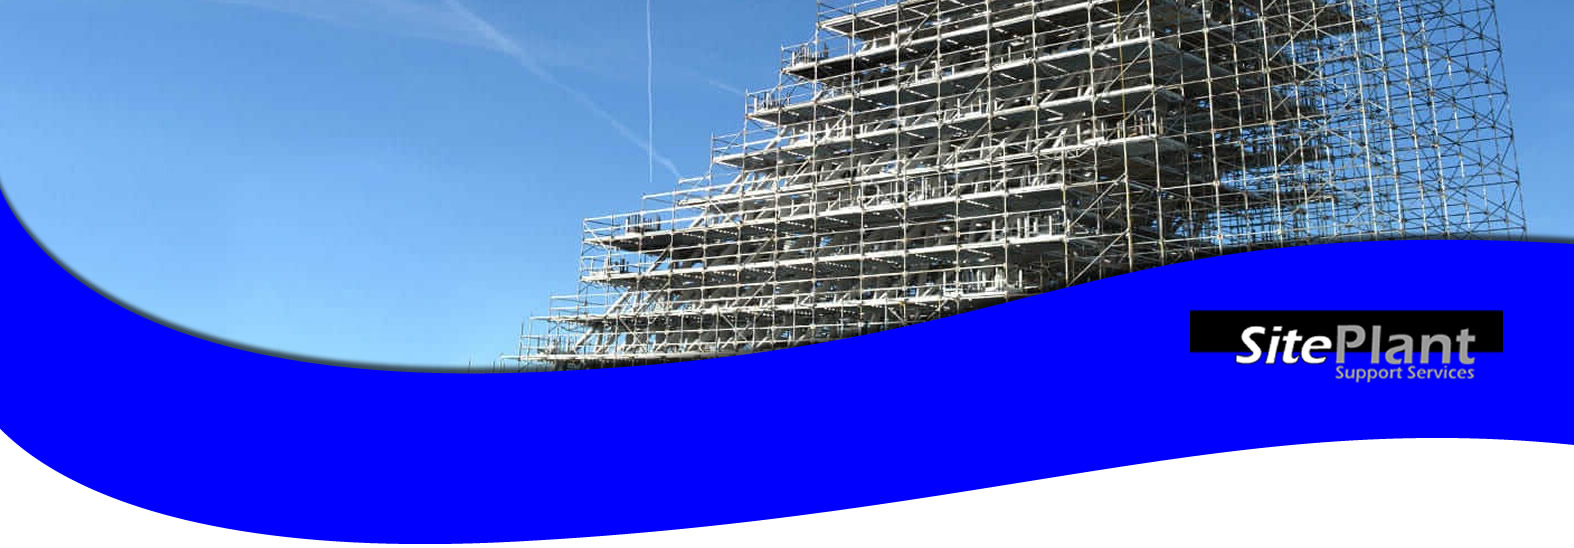 We are a Scaffolding Supplier including used Scaffold Sales .Our used scaffolding range is constantly changing with different systems typically being available at any one time.